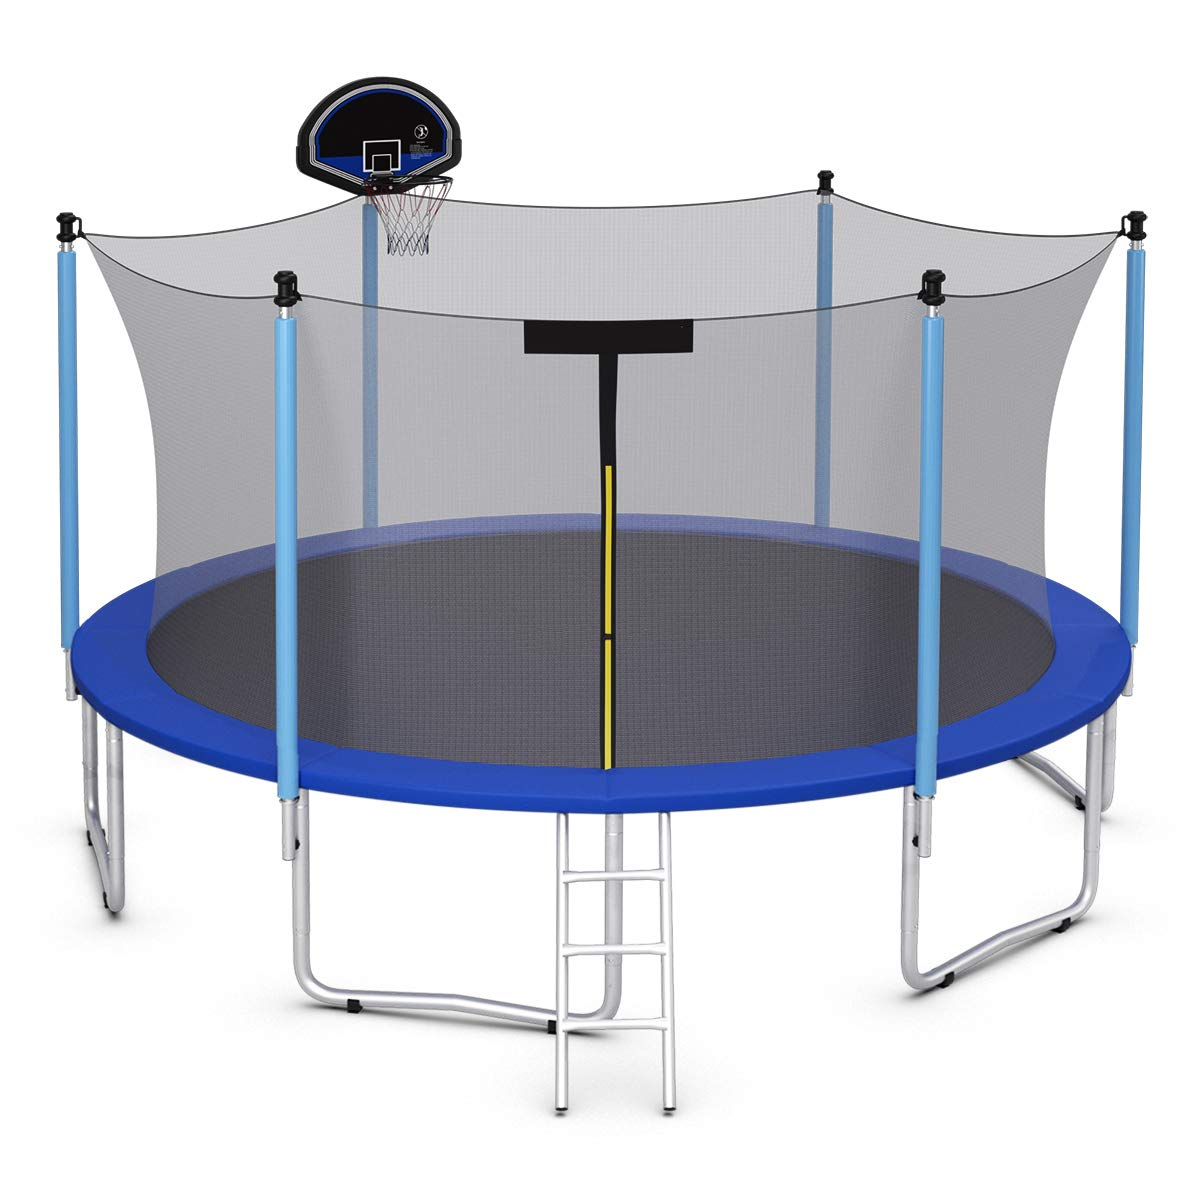 Goplus 15FT 14FT Trampoline with Basketball Hoop, Round Trampoline with Enclosure Net & 3-Step Ladder, Safety Pad, Backyard Bounce Basketball Trampoline for Kids & Adults Outdoor Activities